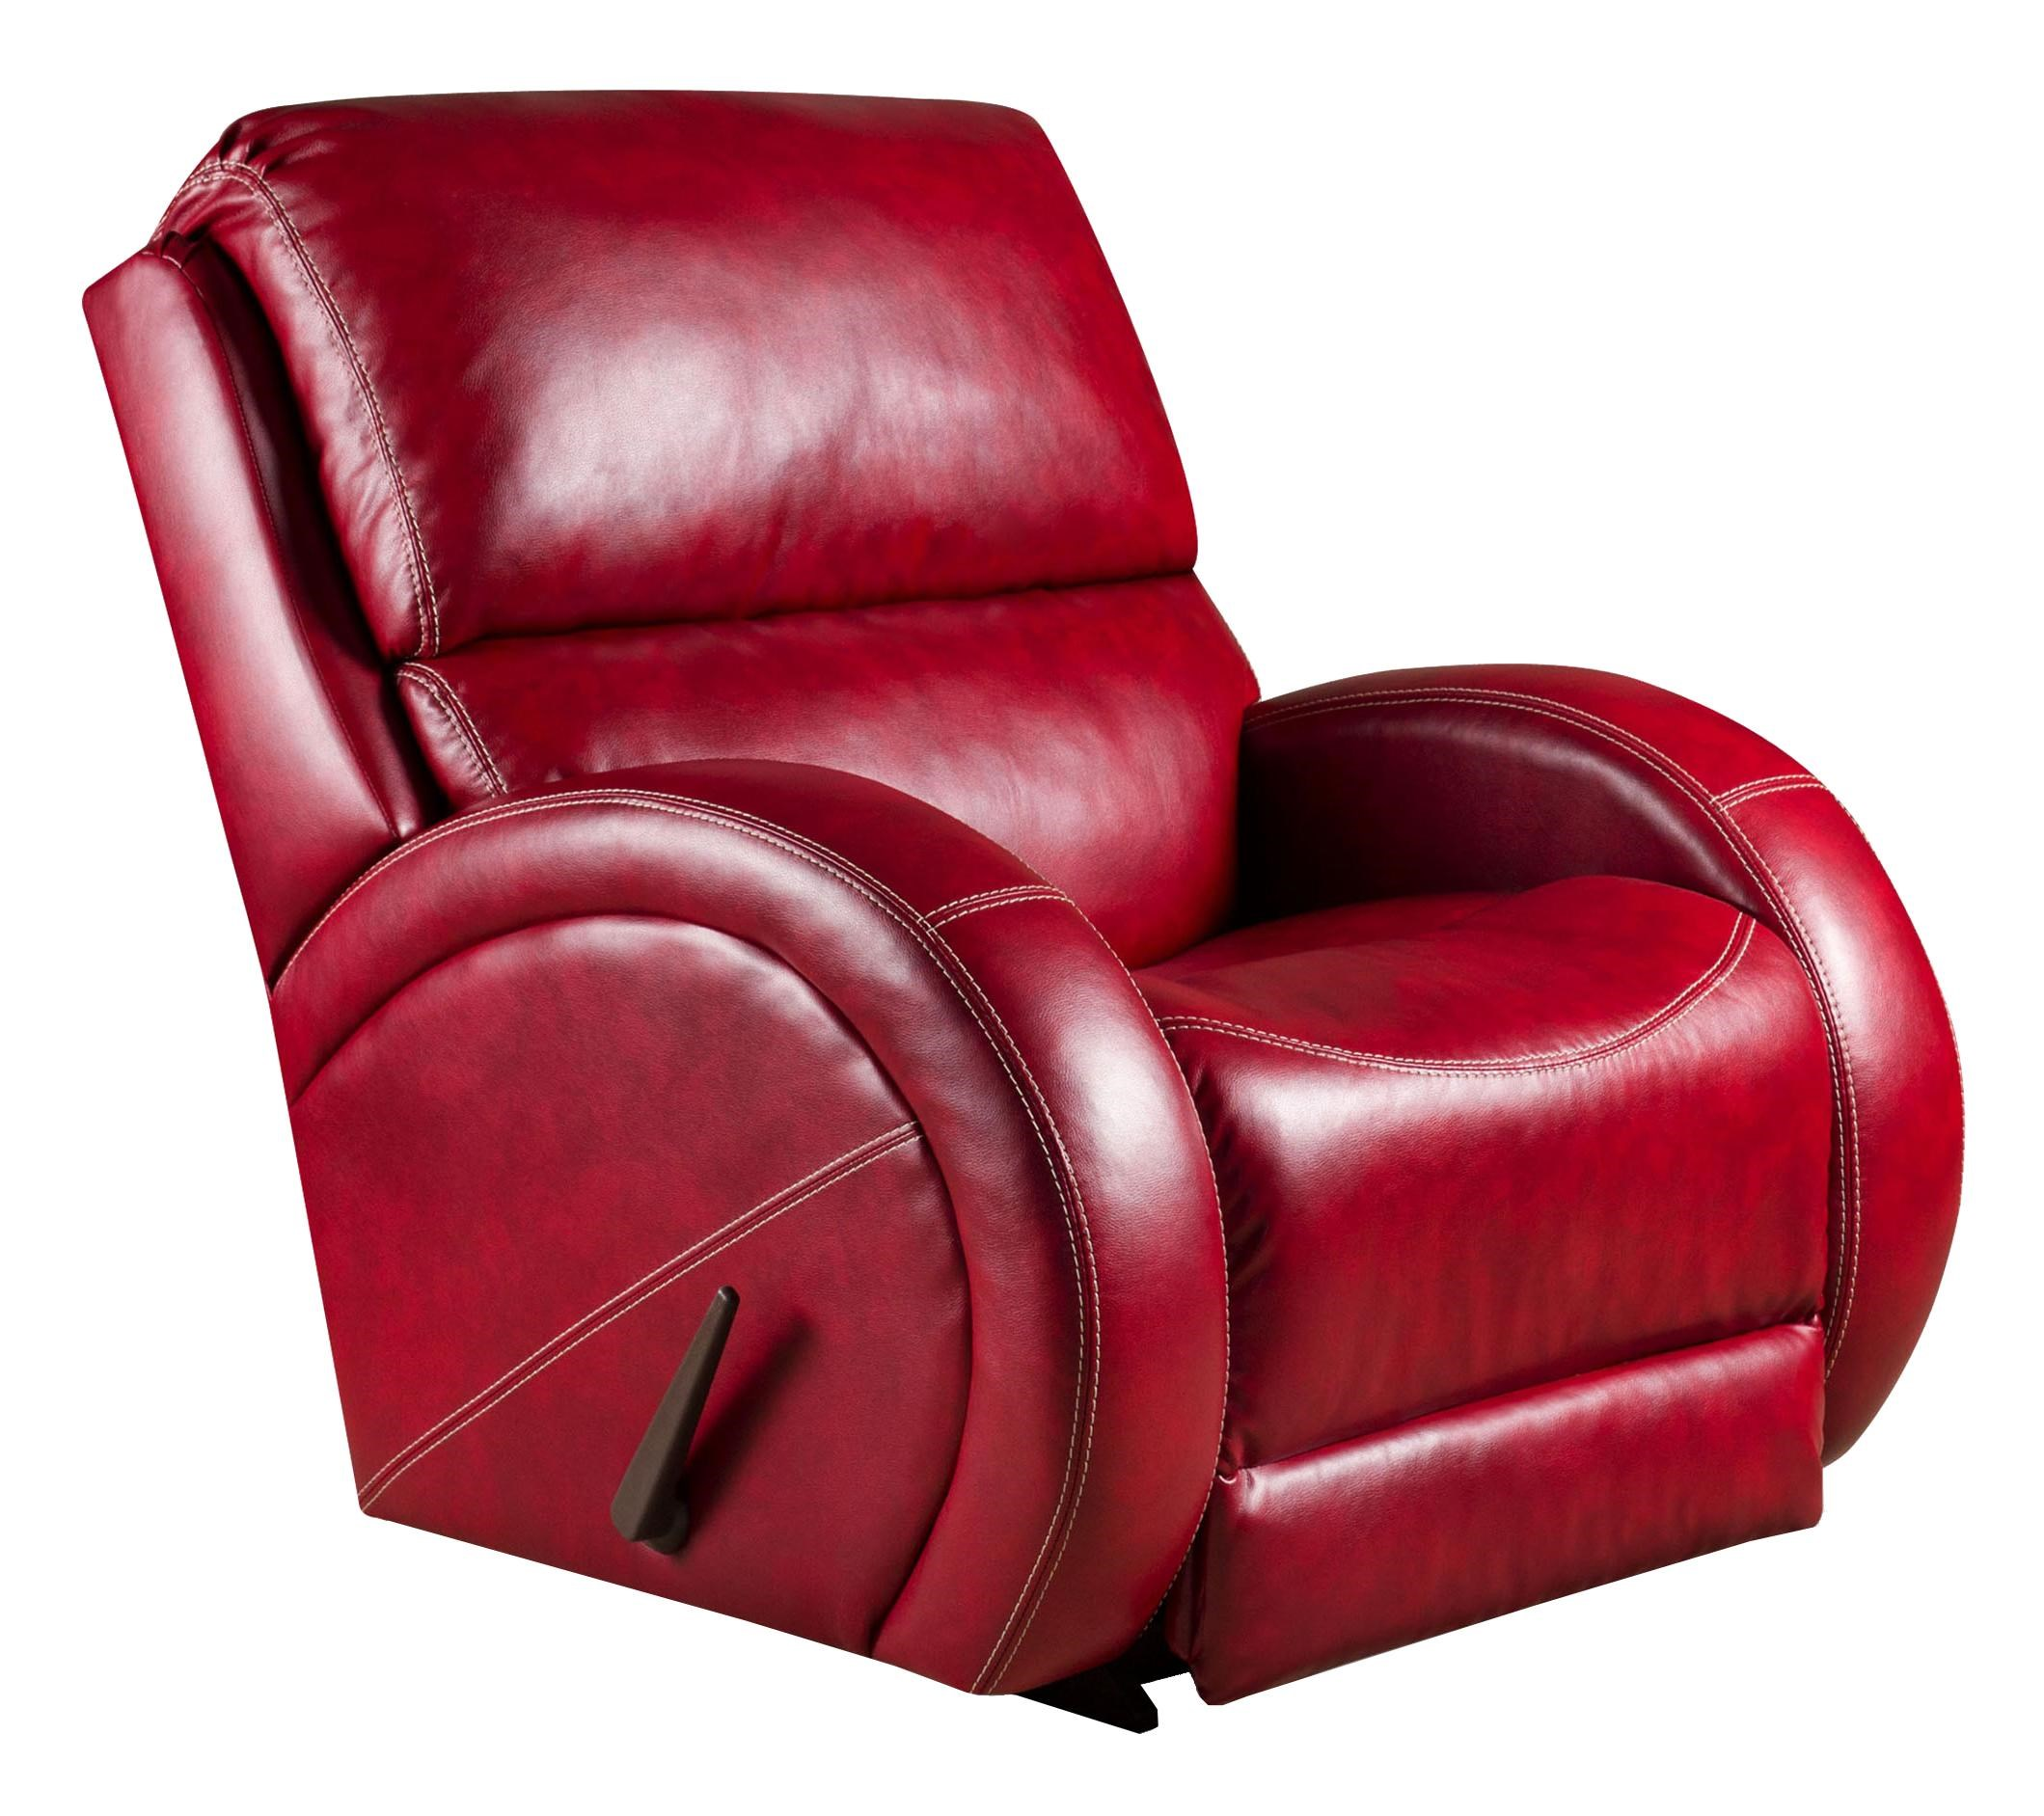 Recliner Shown May Not Represent Exact Features Indicated  sc 1 st  Miskelly Furniture & American Furniture Recliners Power Recliner with Contemporary ... islam-shia.org